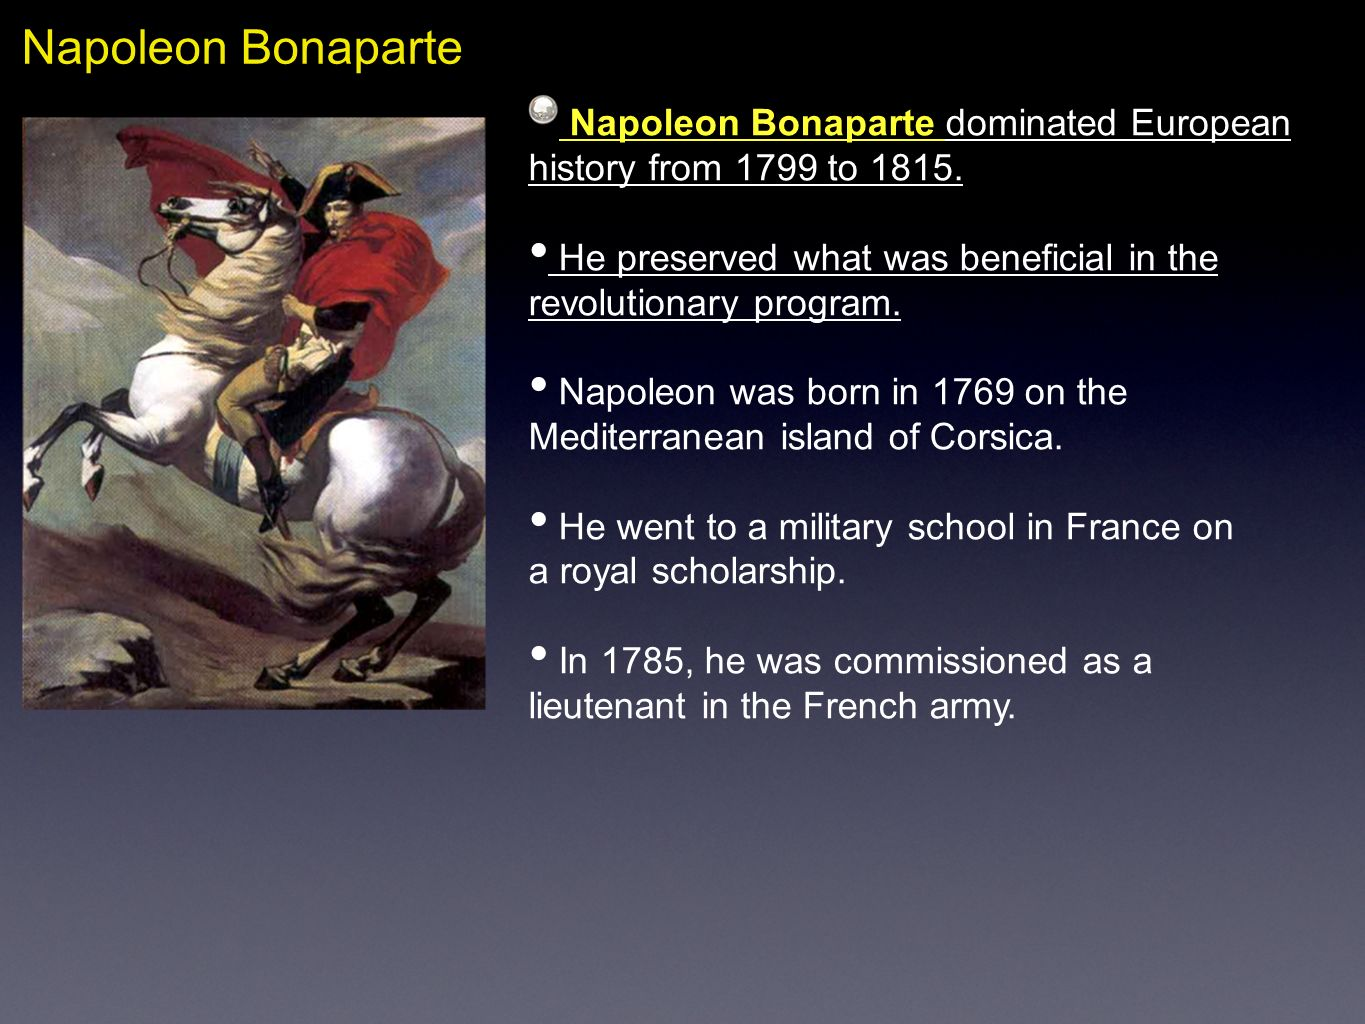 Napoleon BonaparteNapoleon Bonaparte dominated European history from 1799 to 1815. He preserved what was beneficial in the revolutionary program.